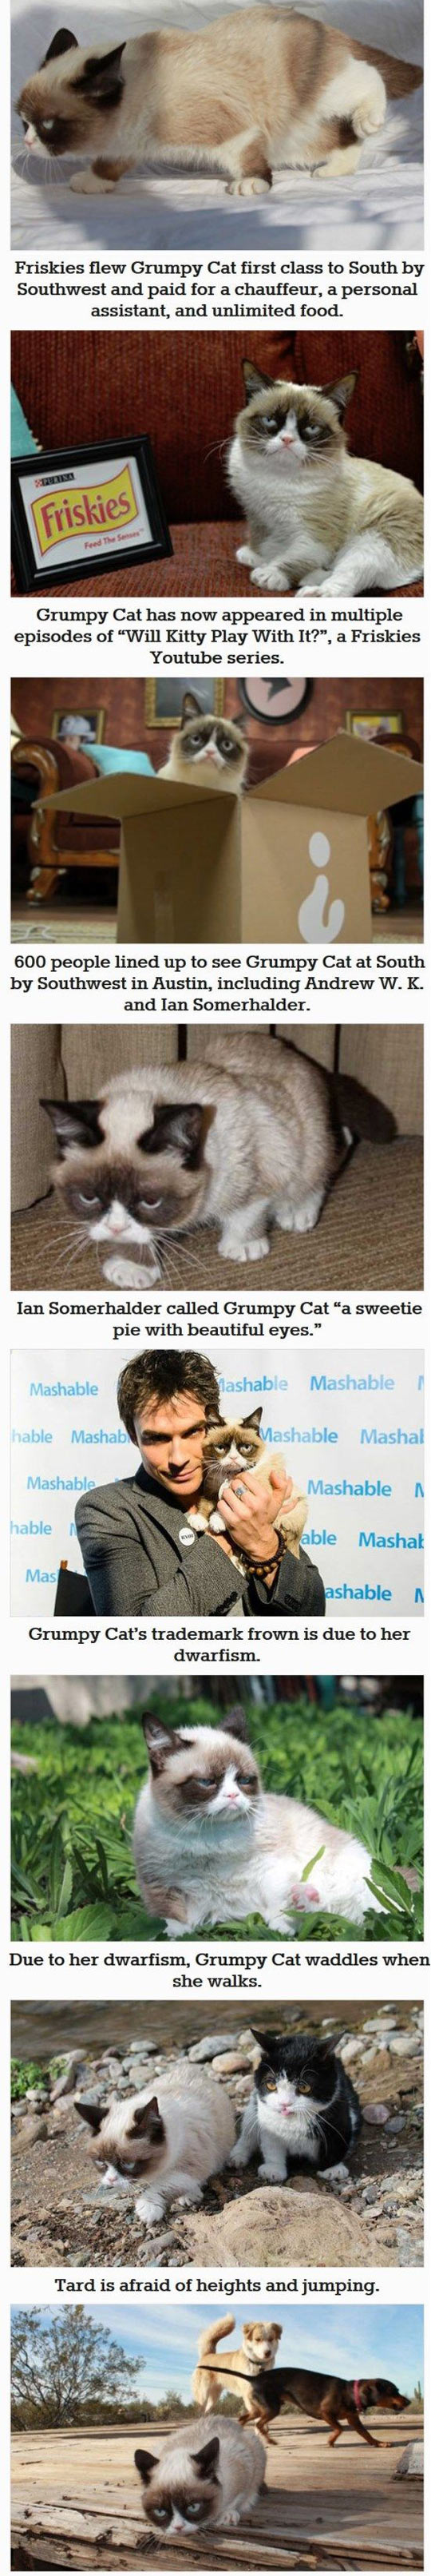 funny-Grumpy-cat-fact-you-dont-know-TV